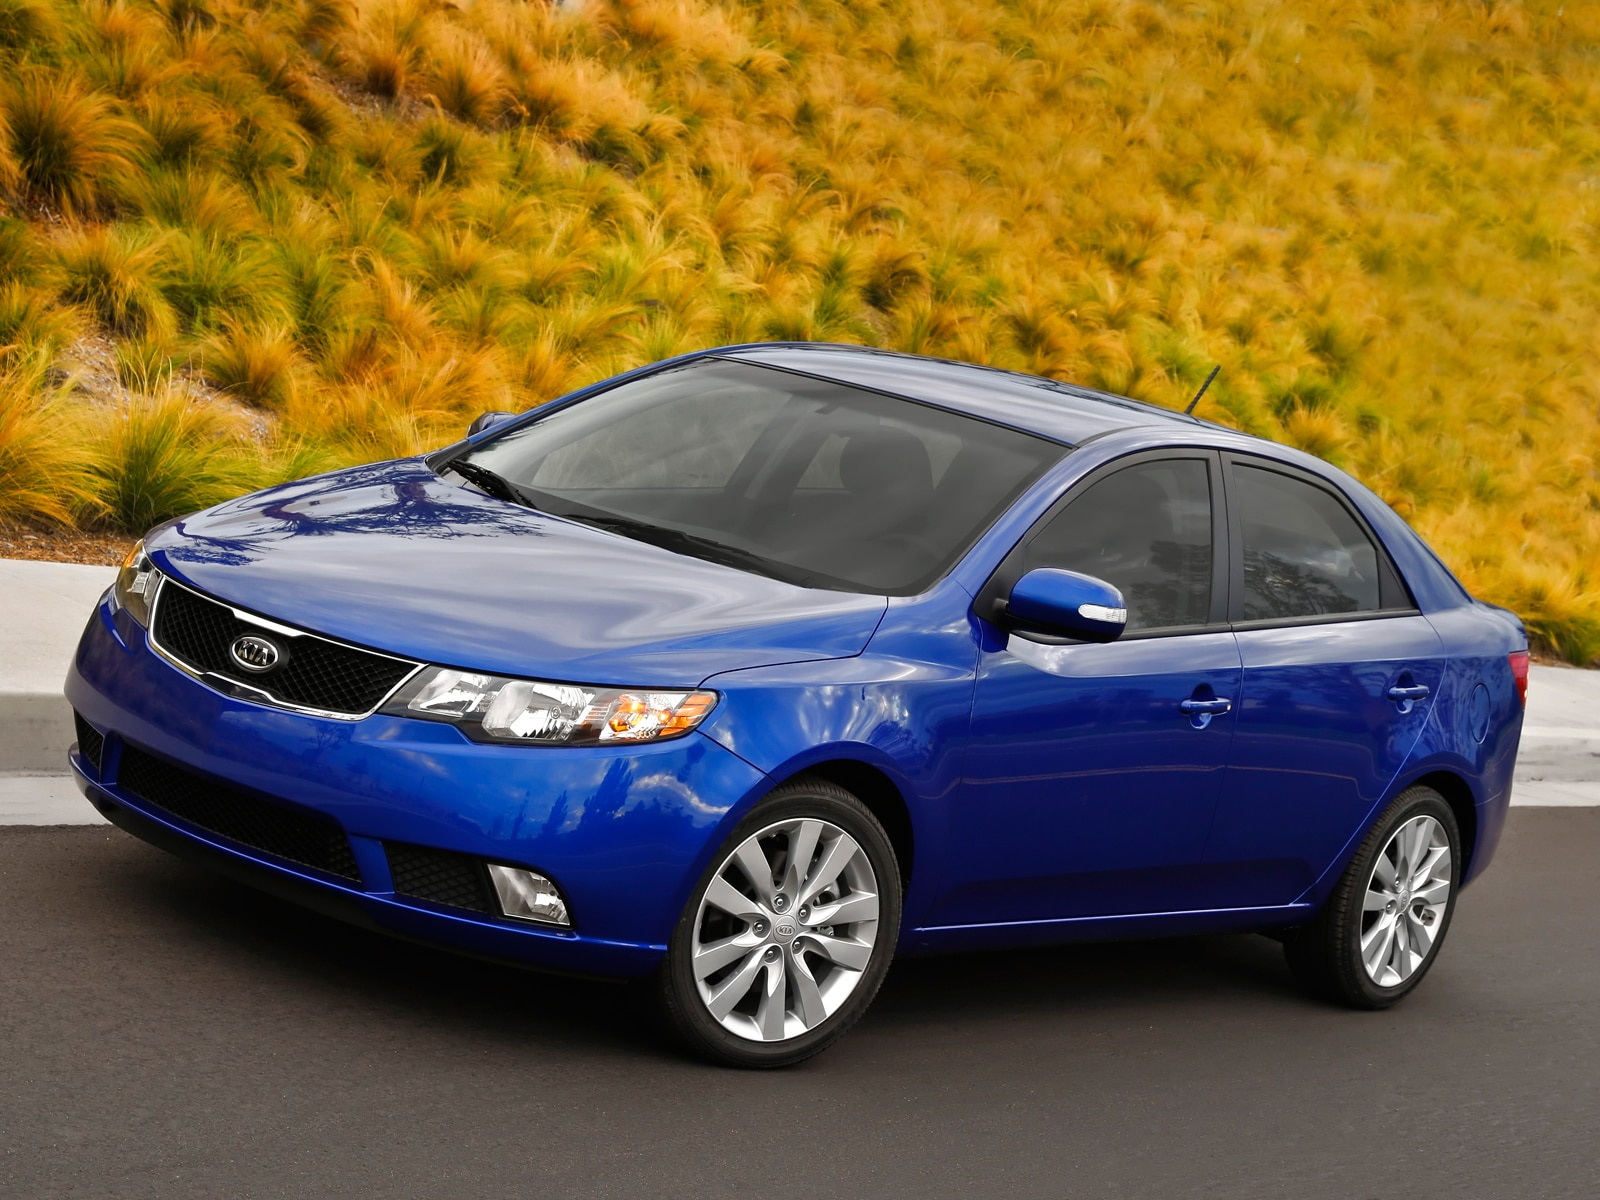 2010 Kia Forte Sx Kia Compact Sedan Review Automobile Magazine